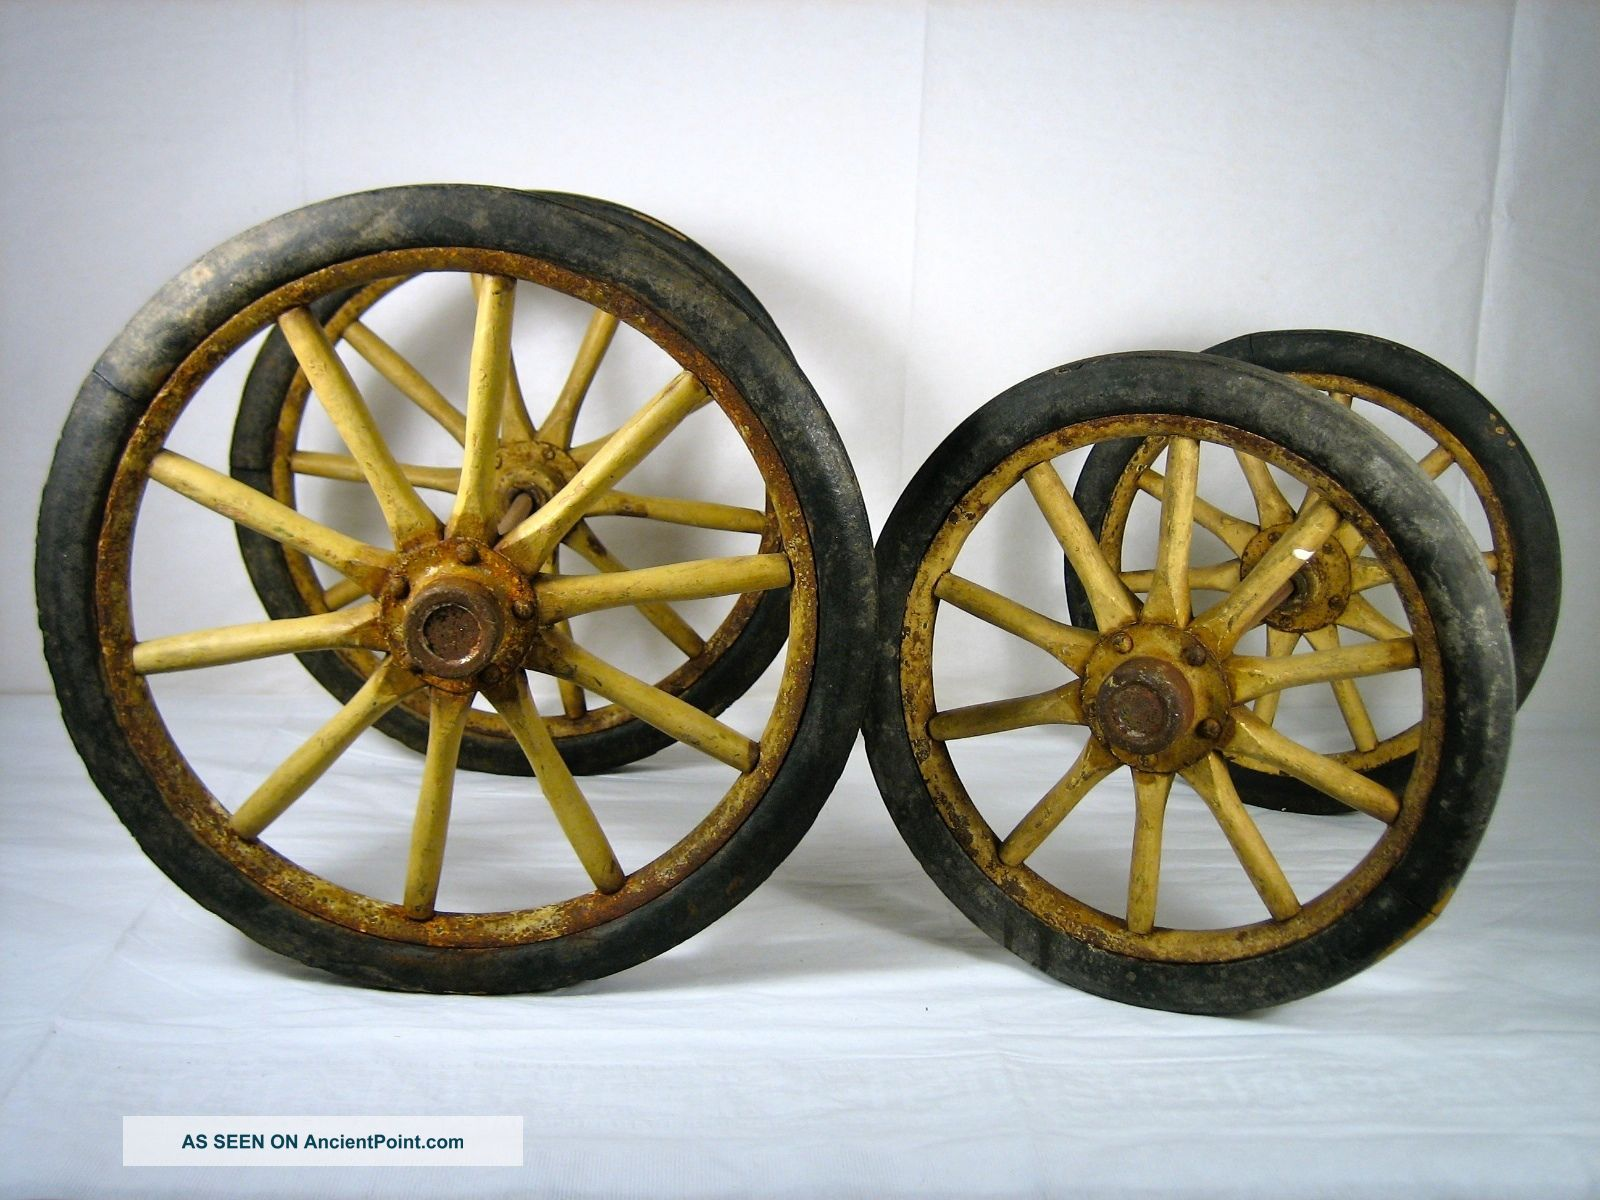 Antique Wagon Cart Buggy (4) Wooden - Spoke - Wheels Rubber Tread Baby Carriages & Buggies photo